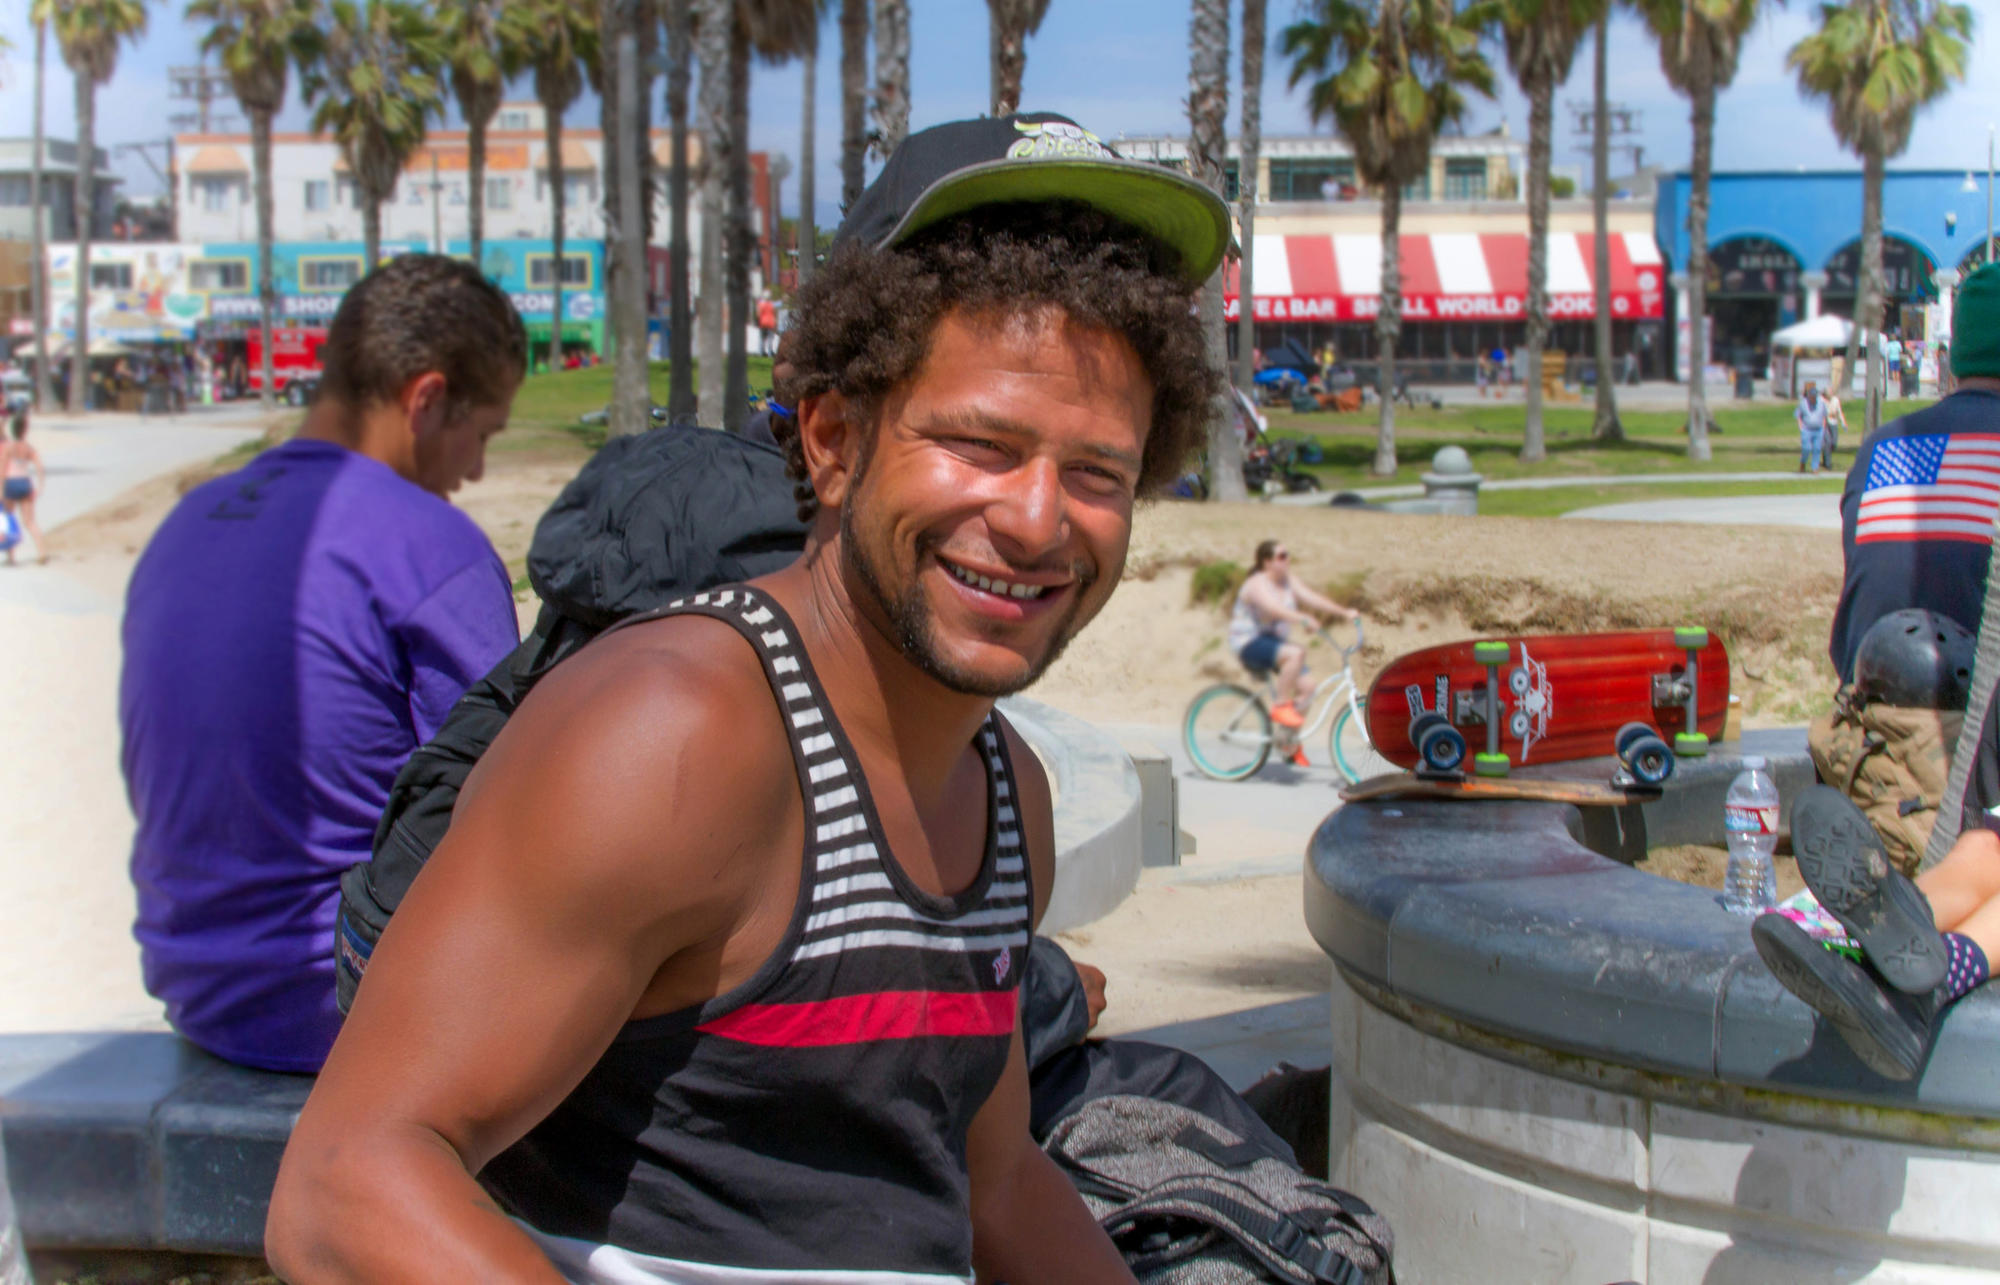 Local filmmaker Mike Costanza took this photo of Brendon Glenn on April 30, 2015, five days before he was shot by the LAPD.